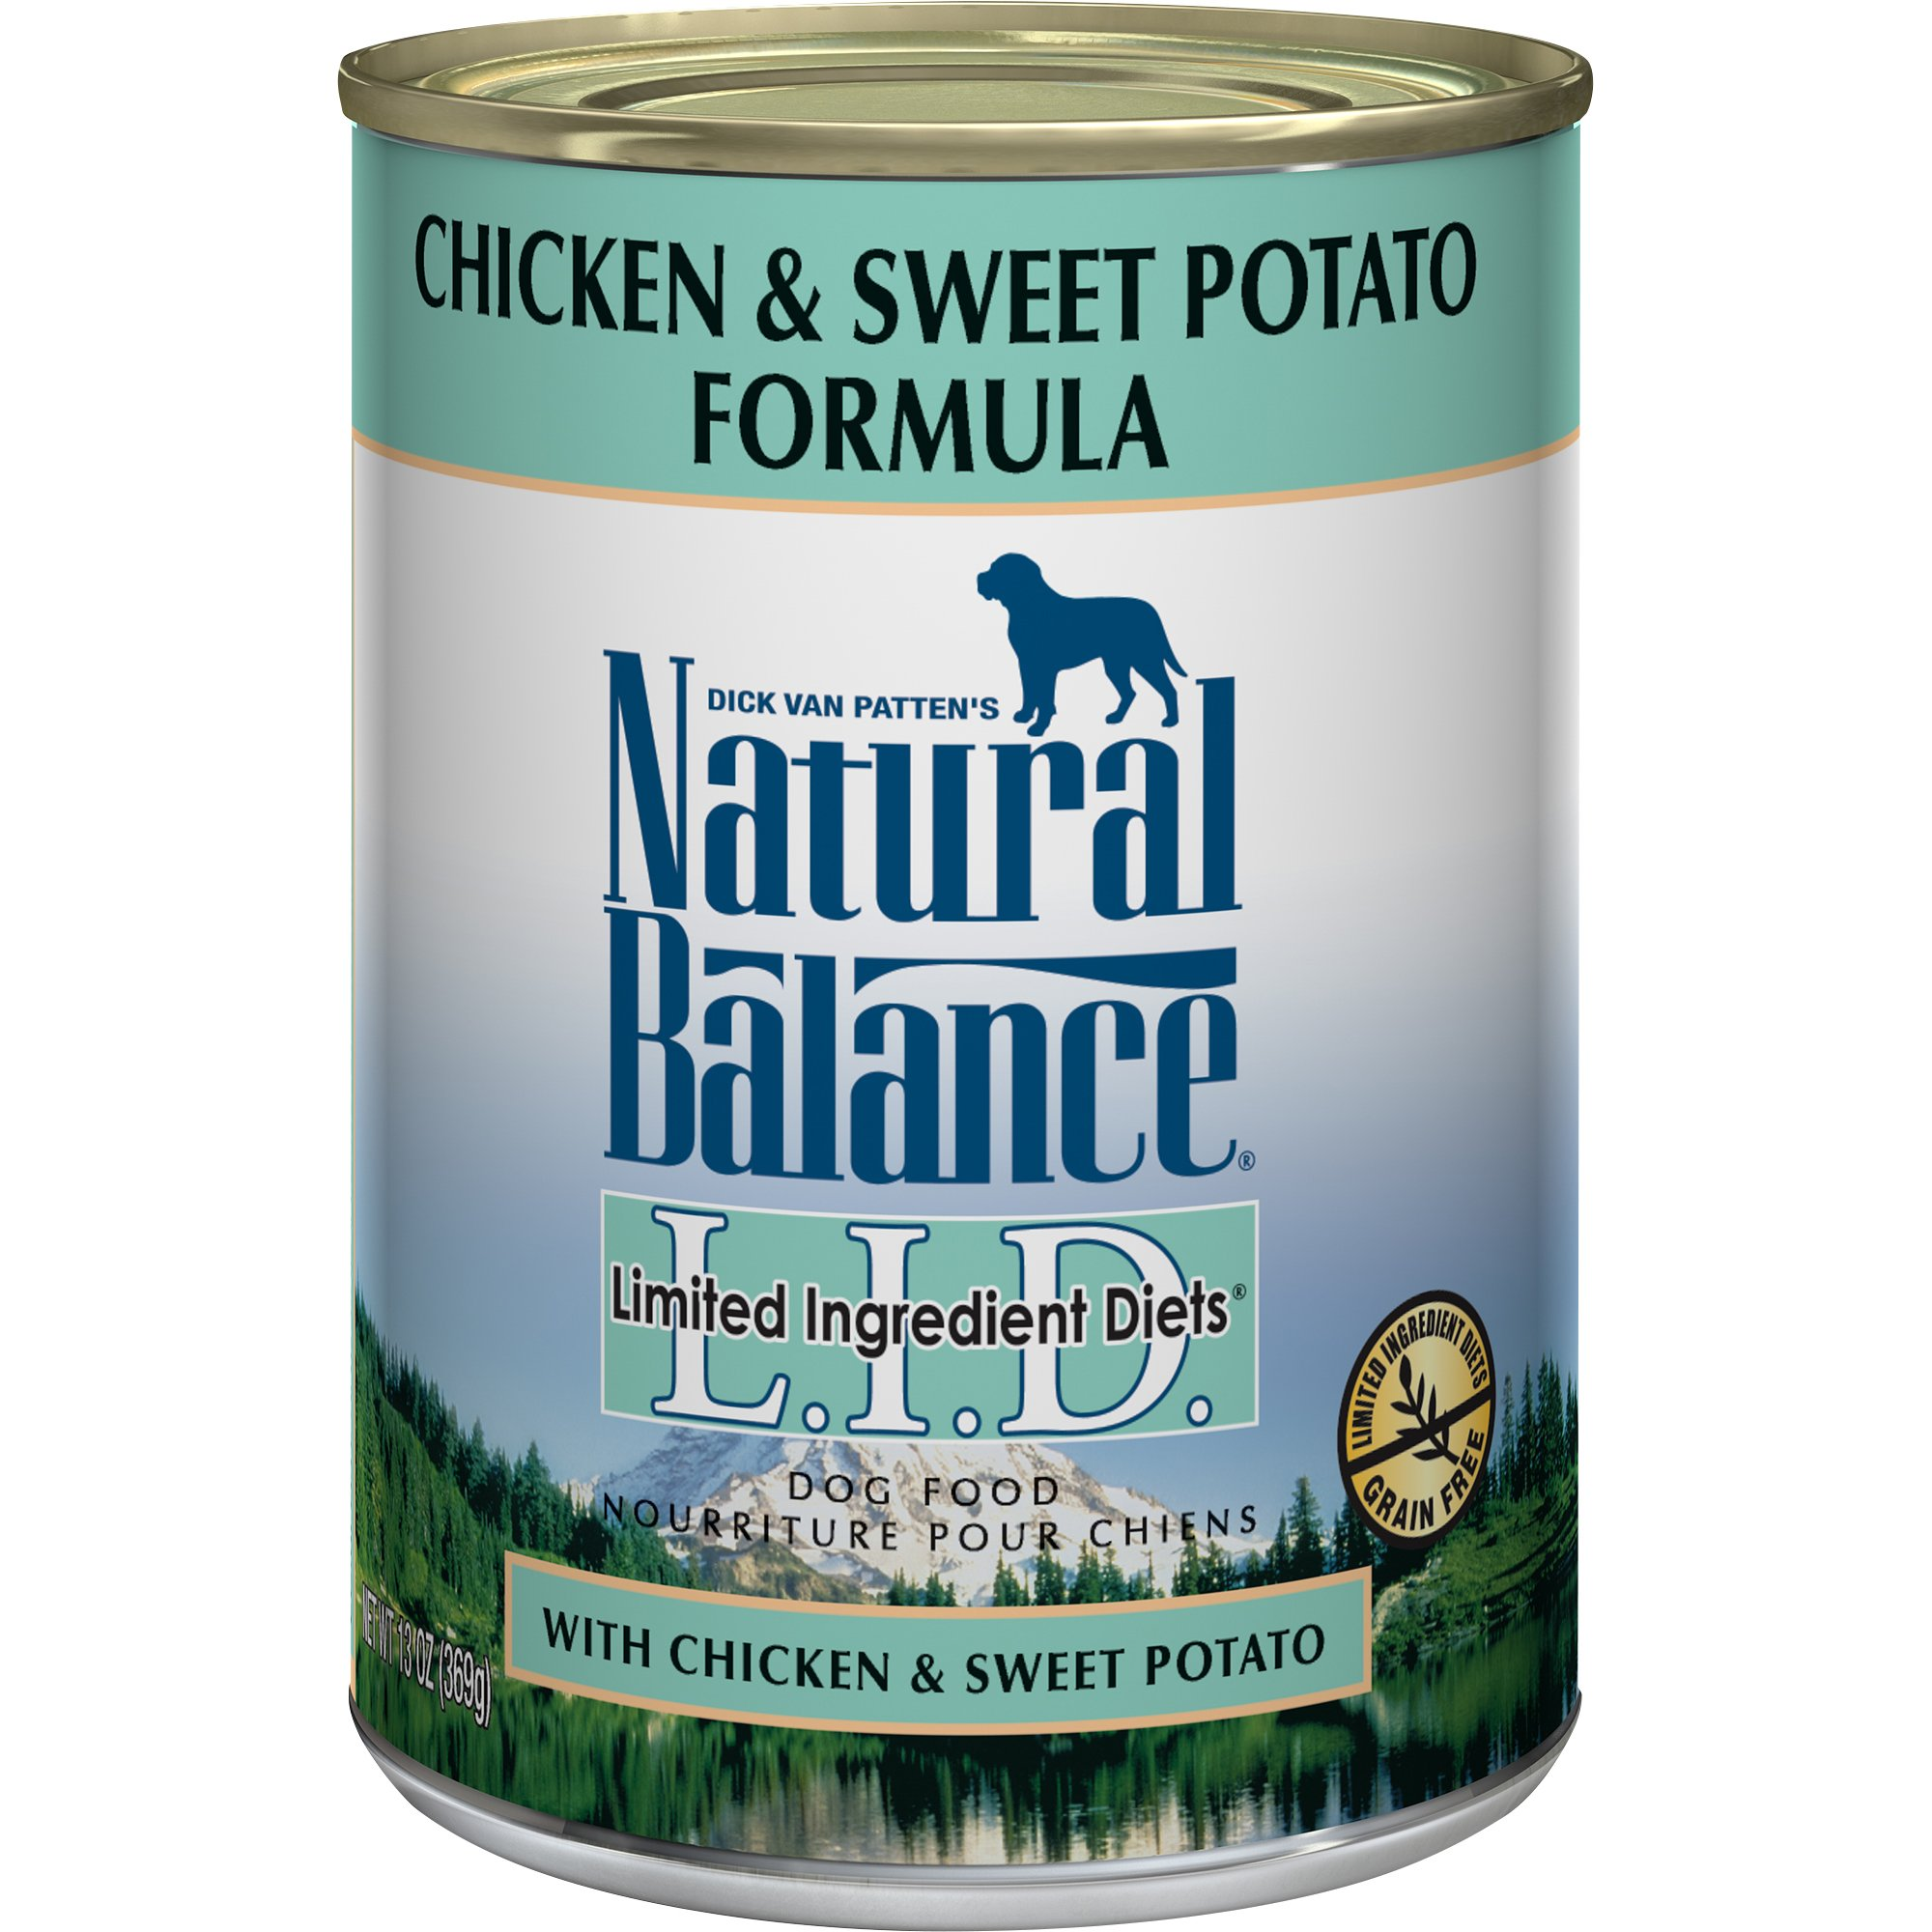 Natural Balance L.I.D. Limited Ingredient Diets Canned Wet Dog Food, Grain Free, Chicken and Sweet Potato Formula, 13-Ounce (Pack of 12)